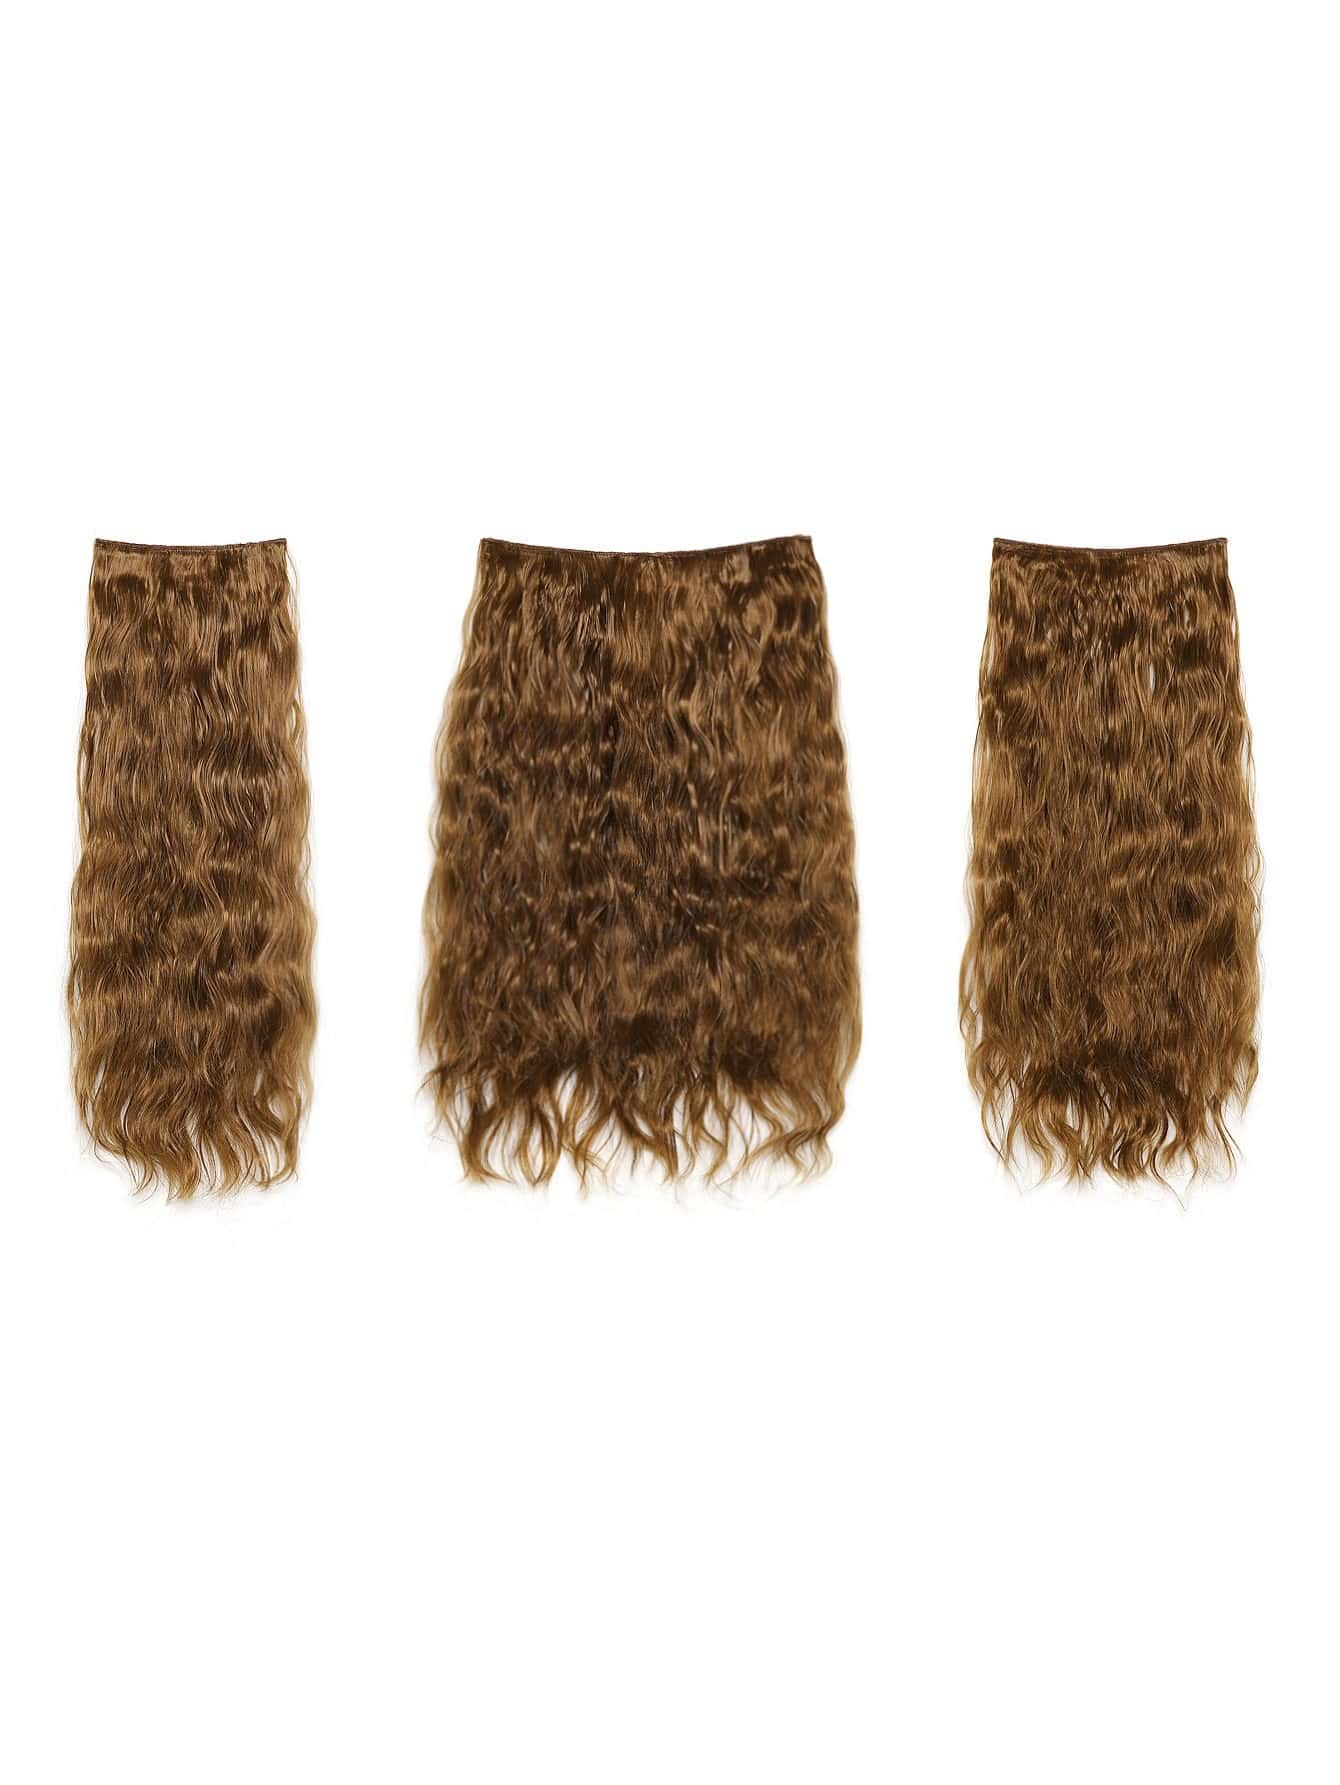 Mix Auburn Clip In Curly Hair Extension 3pcs